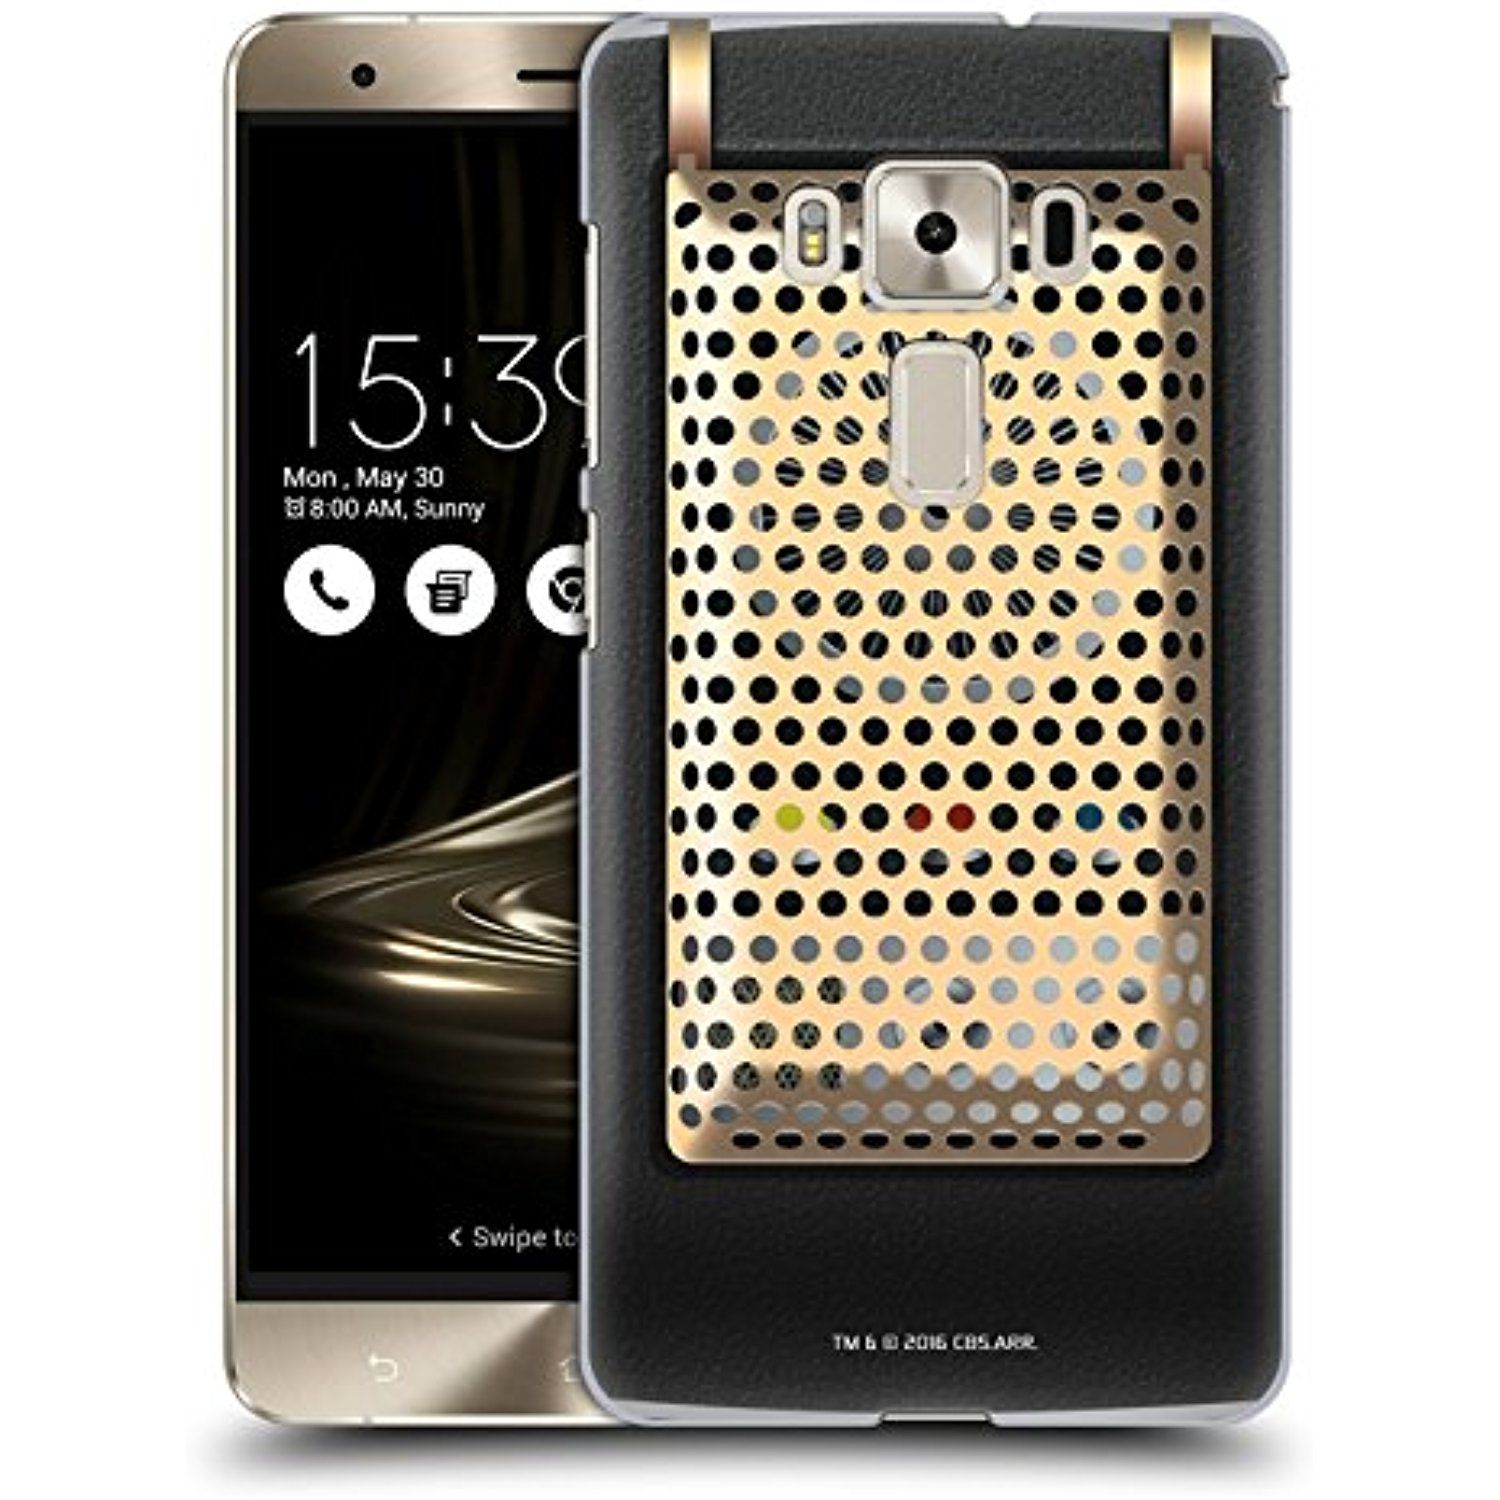 Official Star Trek Communicator Closed Gadgets Hard Back Case For Asus Zenfone 3 Deluxe Zs570kl You Can Find Out More Details At The Link Of Image